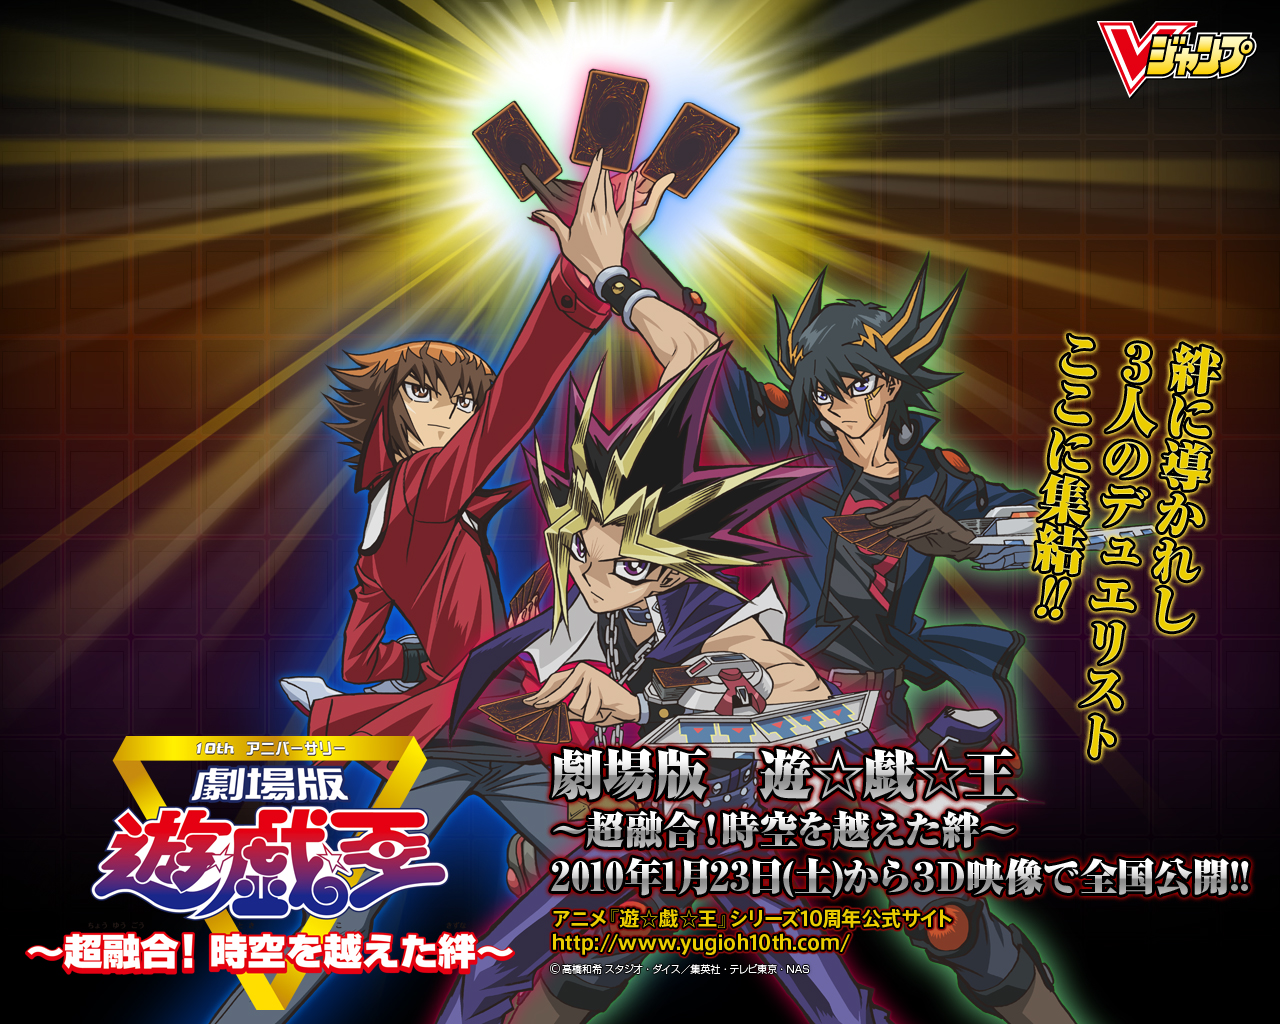 YuGiOh Duel Monsters GX 5Ds 1280x1024